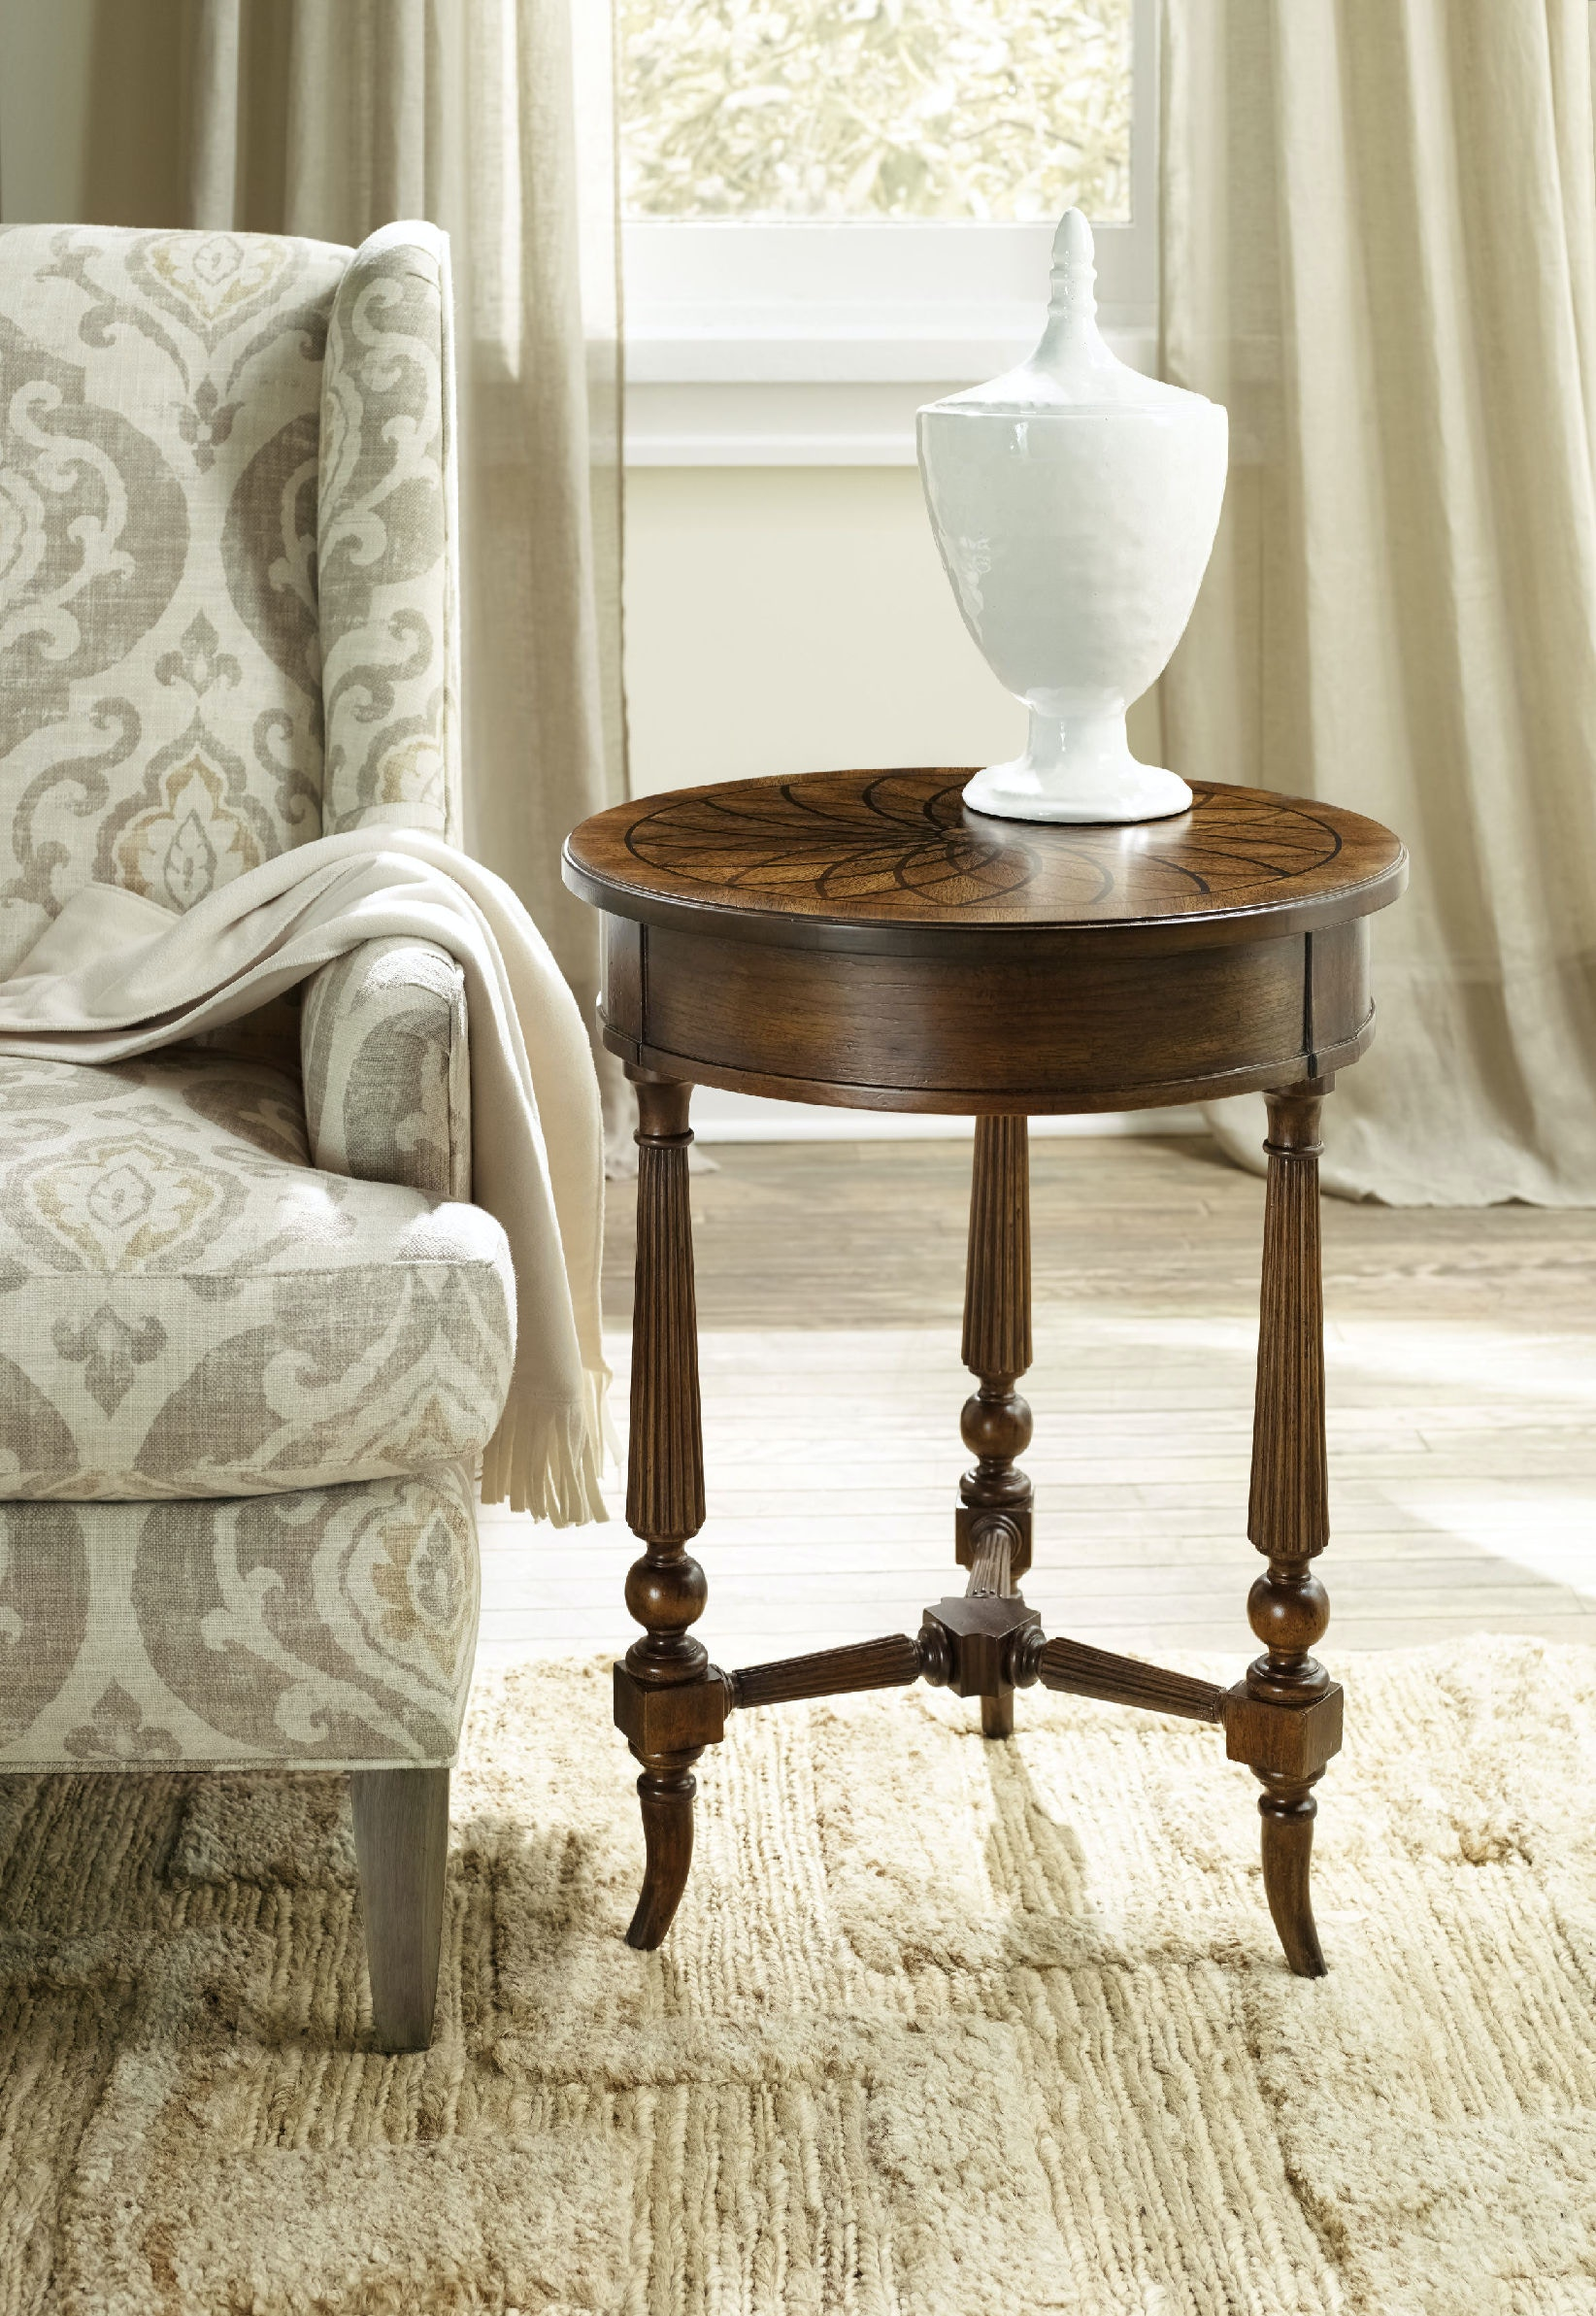 Hooker Furniture Living Room Archivist Round Accent Table 5447 50006